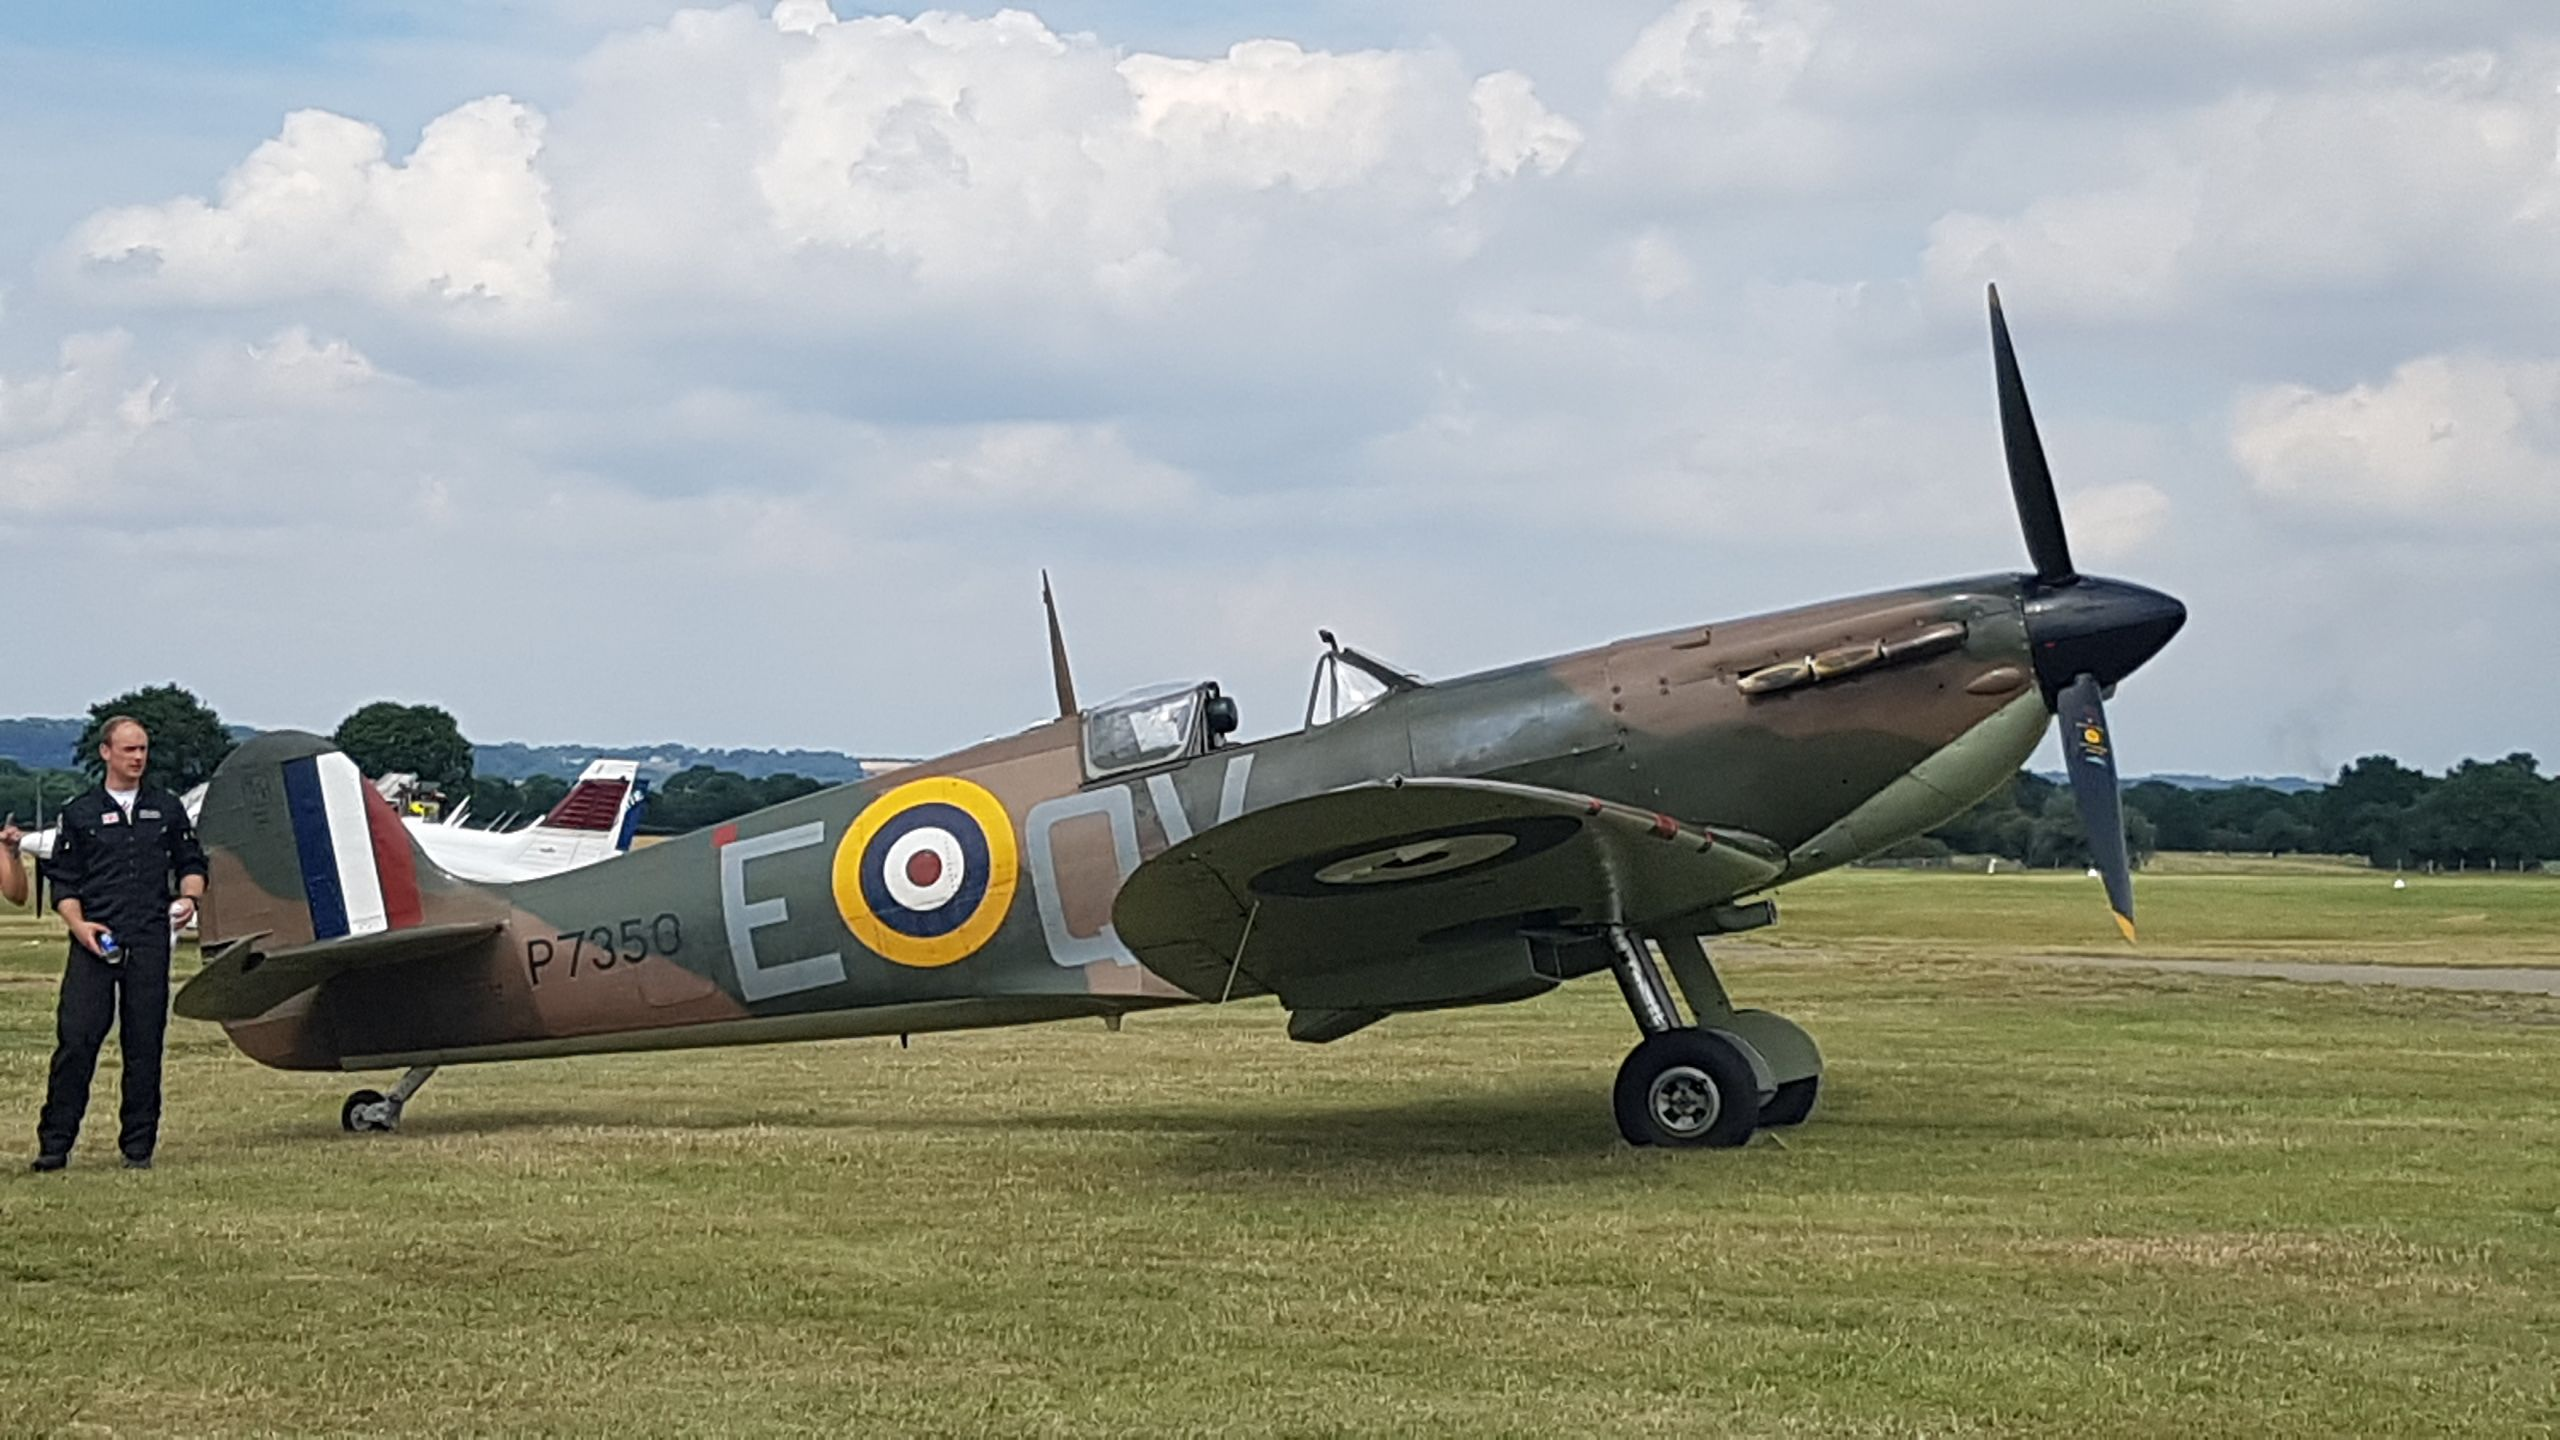 Spitfire Mark 2 Wwii fighters, Battle of britain